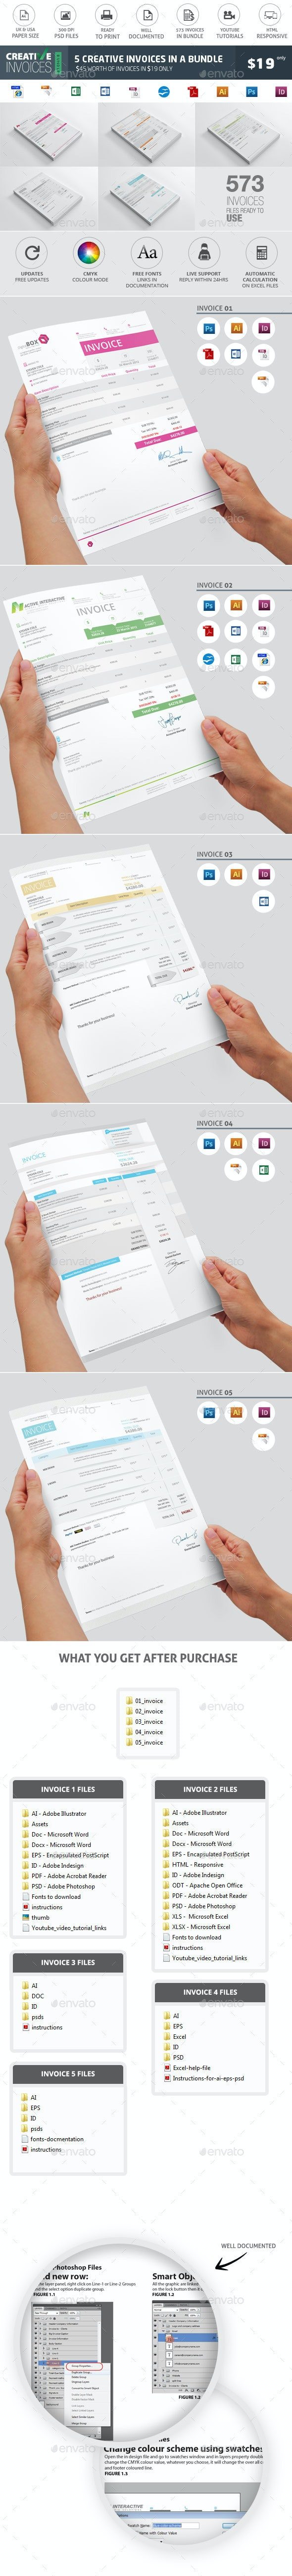 Invoices Bundle 5 in 1 - Proposals & Invoices Stationery